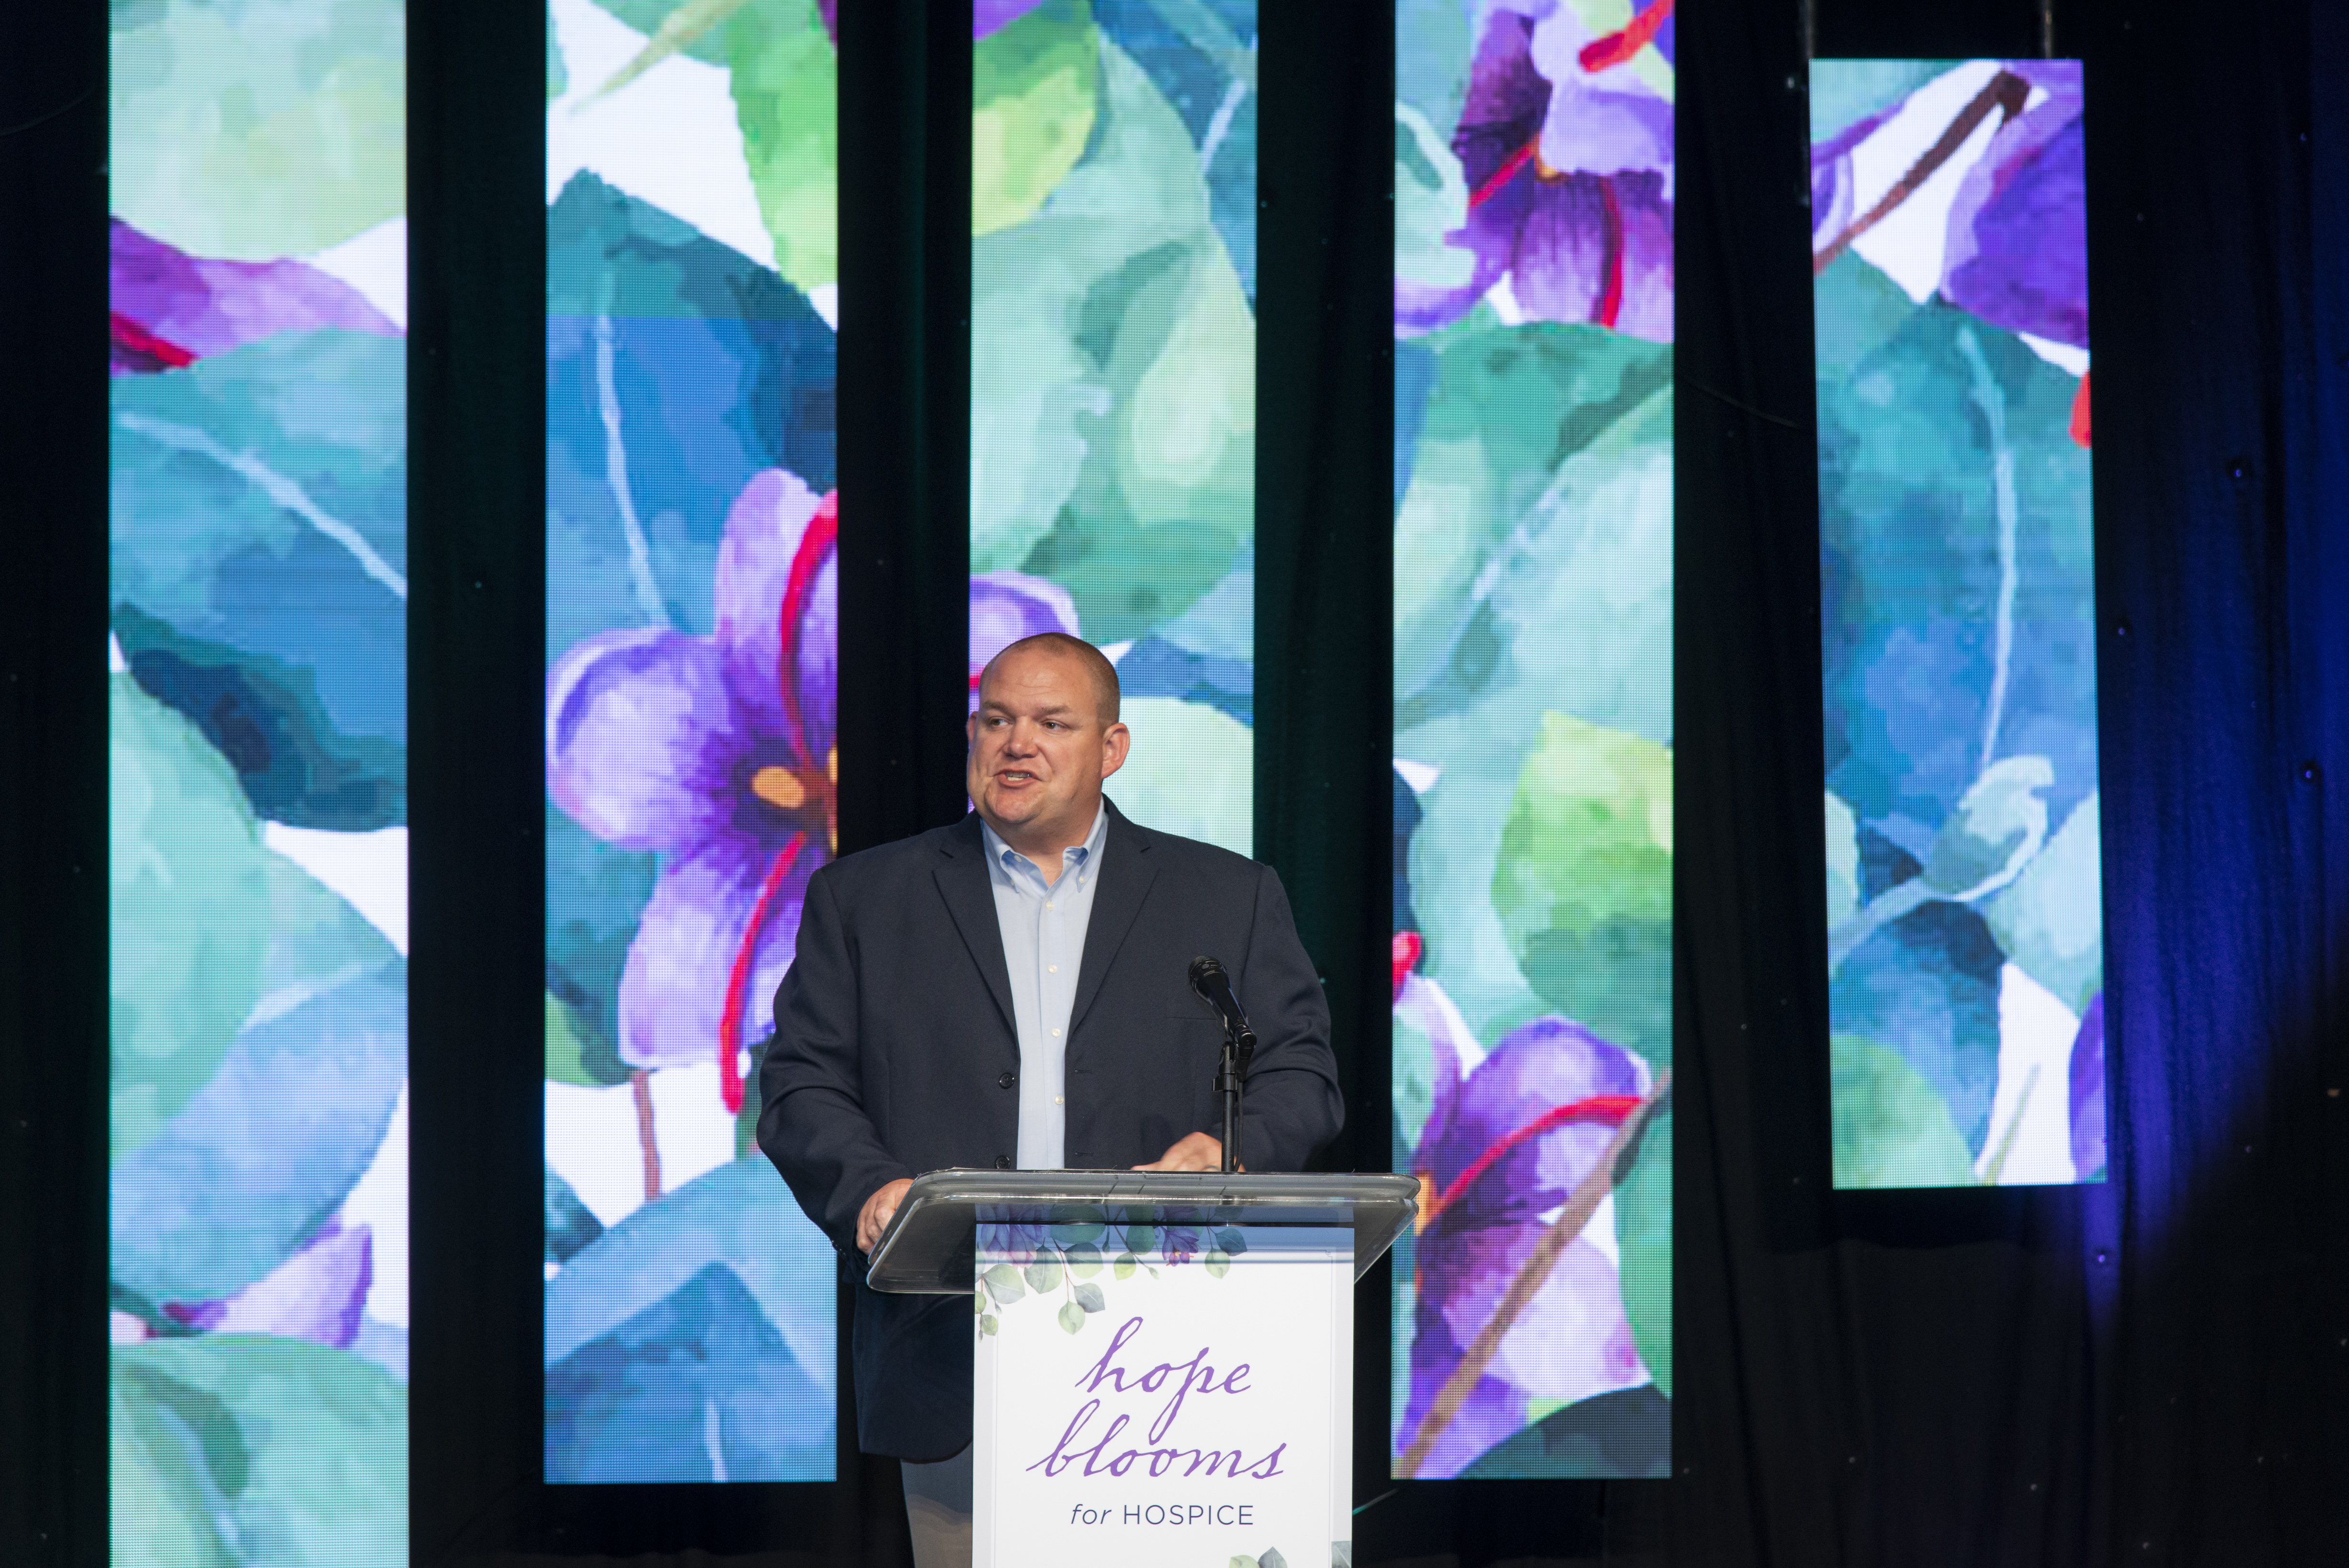 Photograph taken at Spartanburg Regional Hospice and Foundation 2019 Hope Blooms luncheon at Spartanburg Marriott by photographer Stephen Stinson.